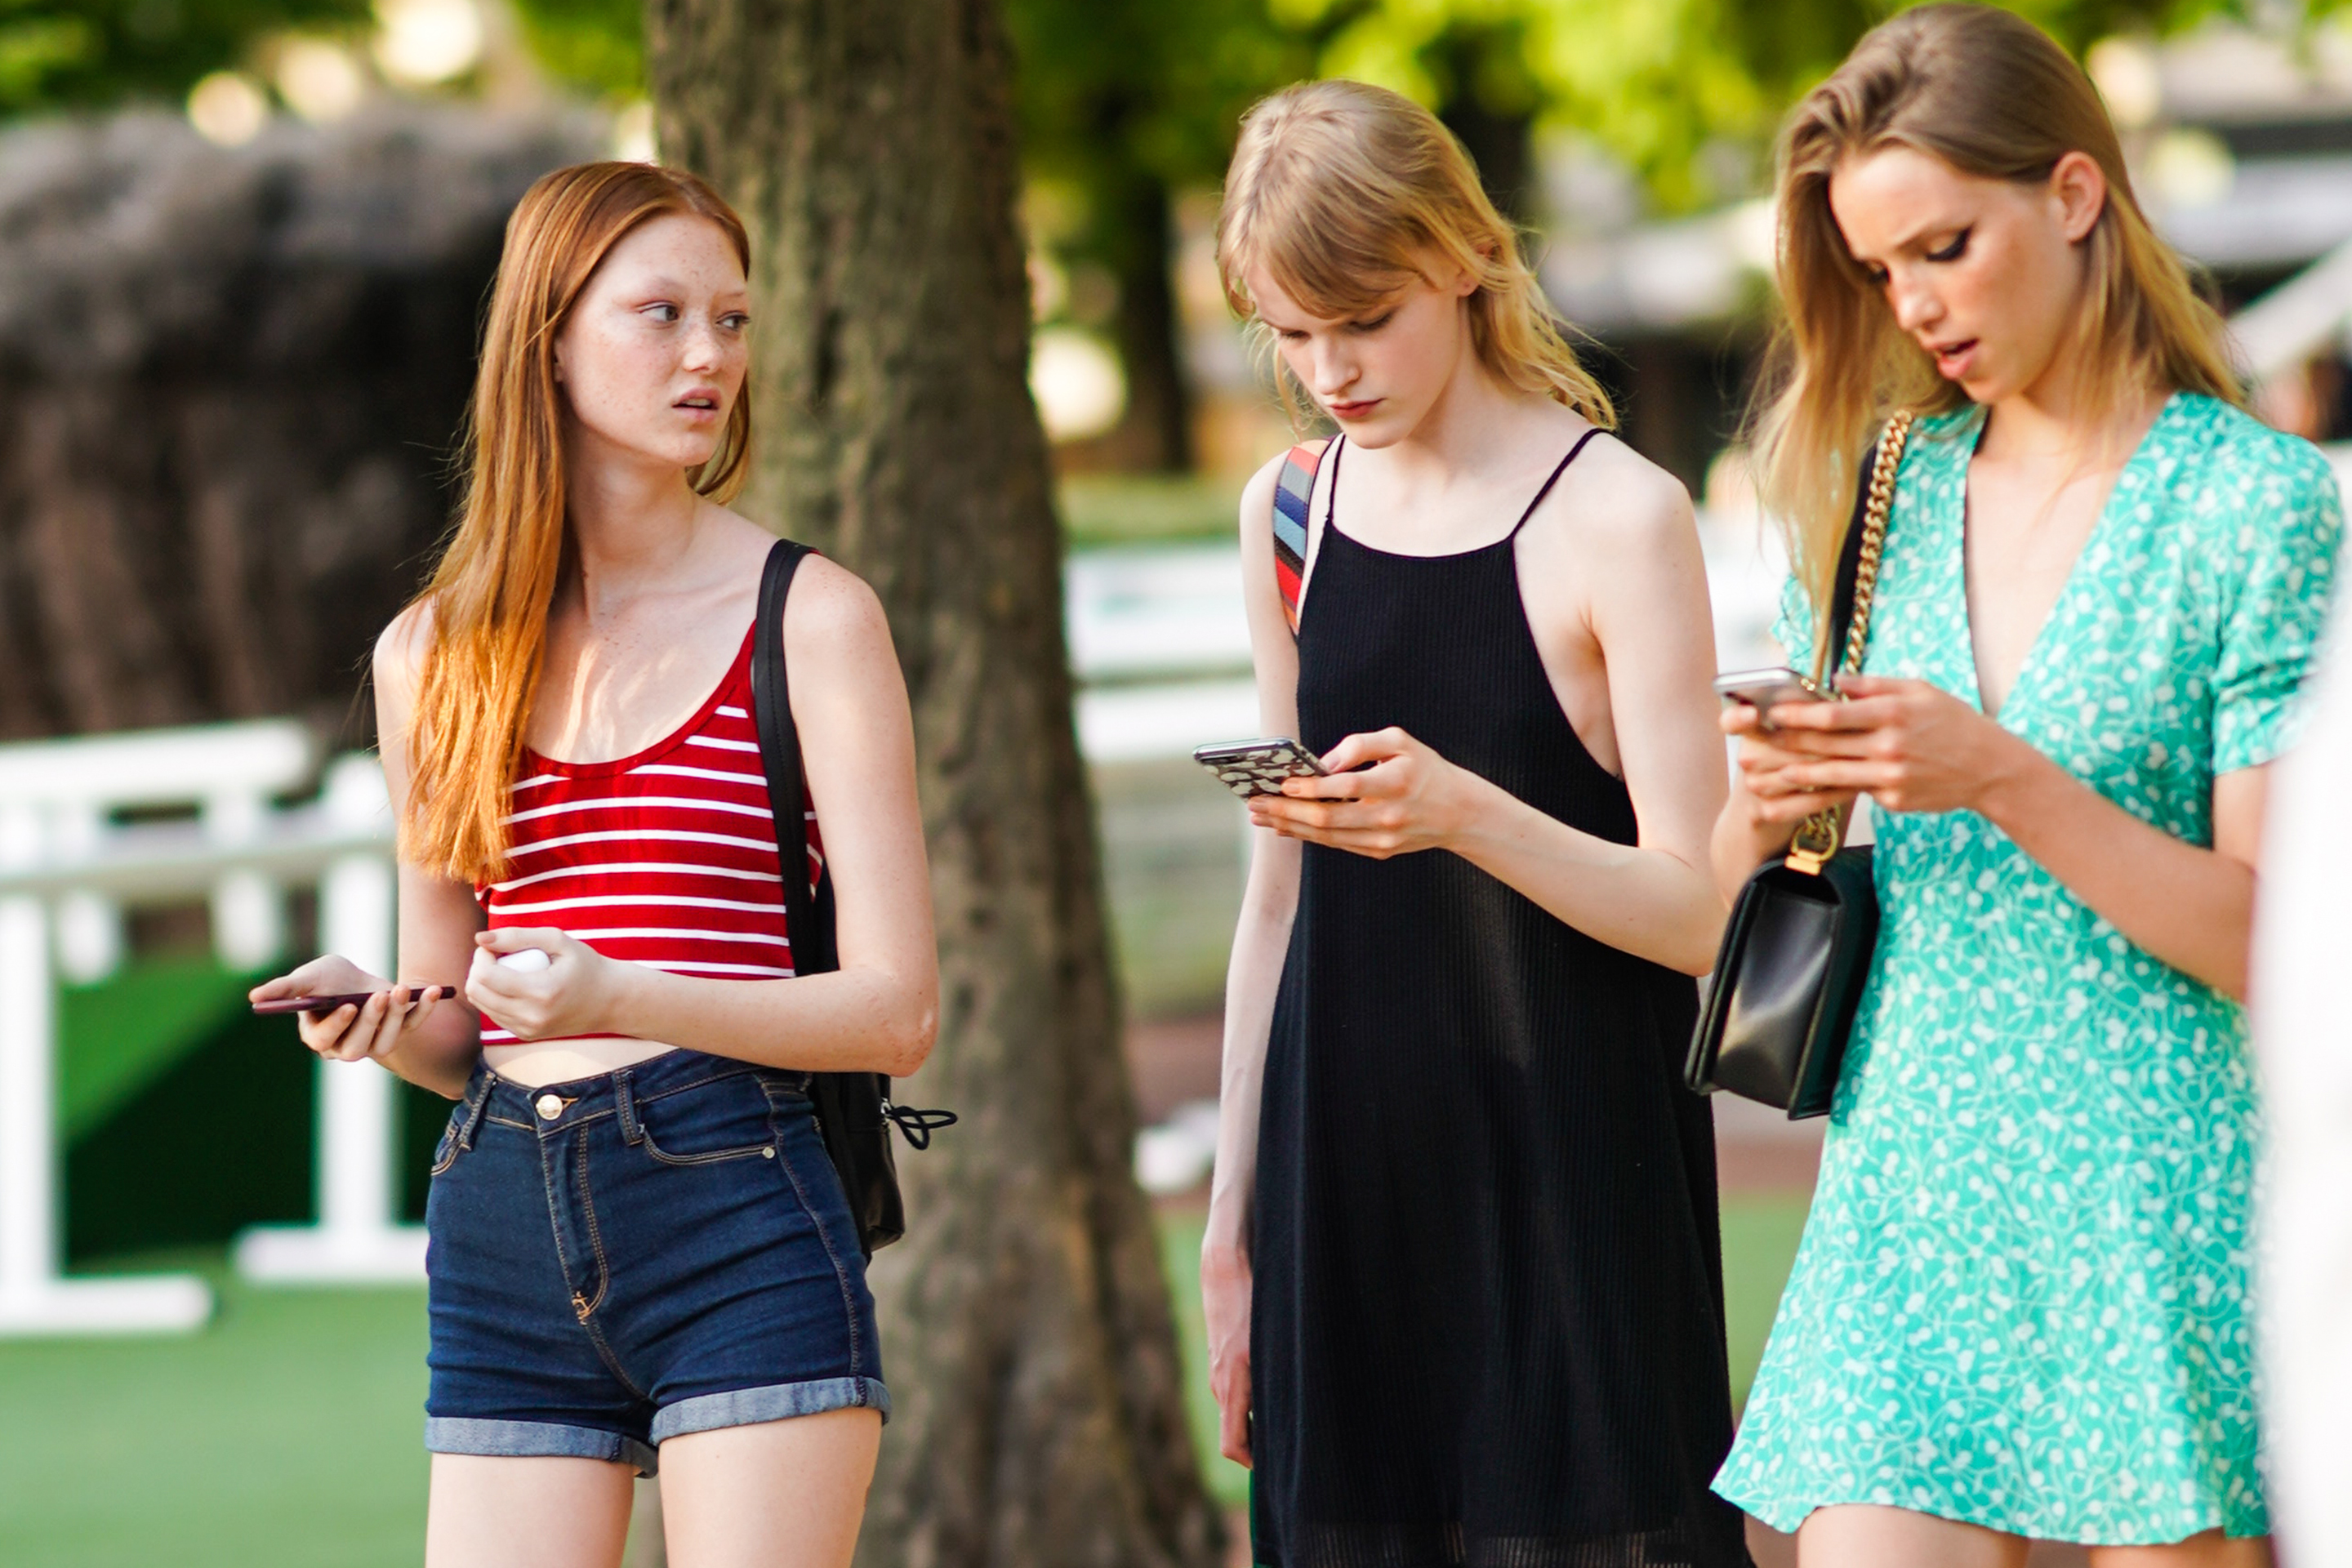 social media phone teens group